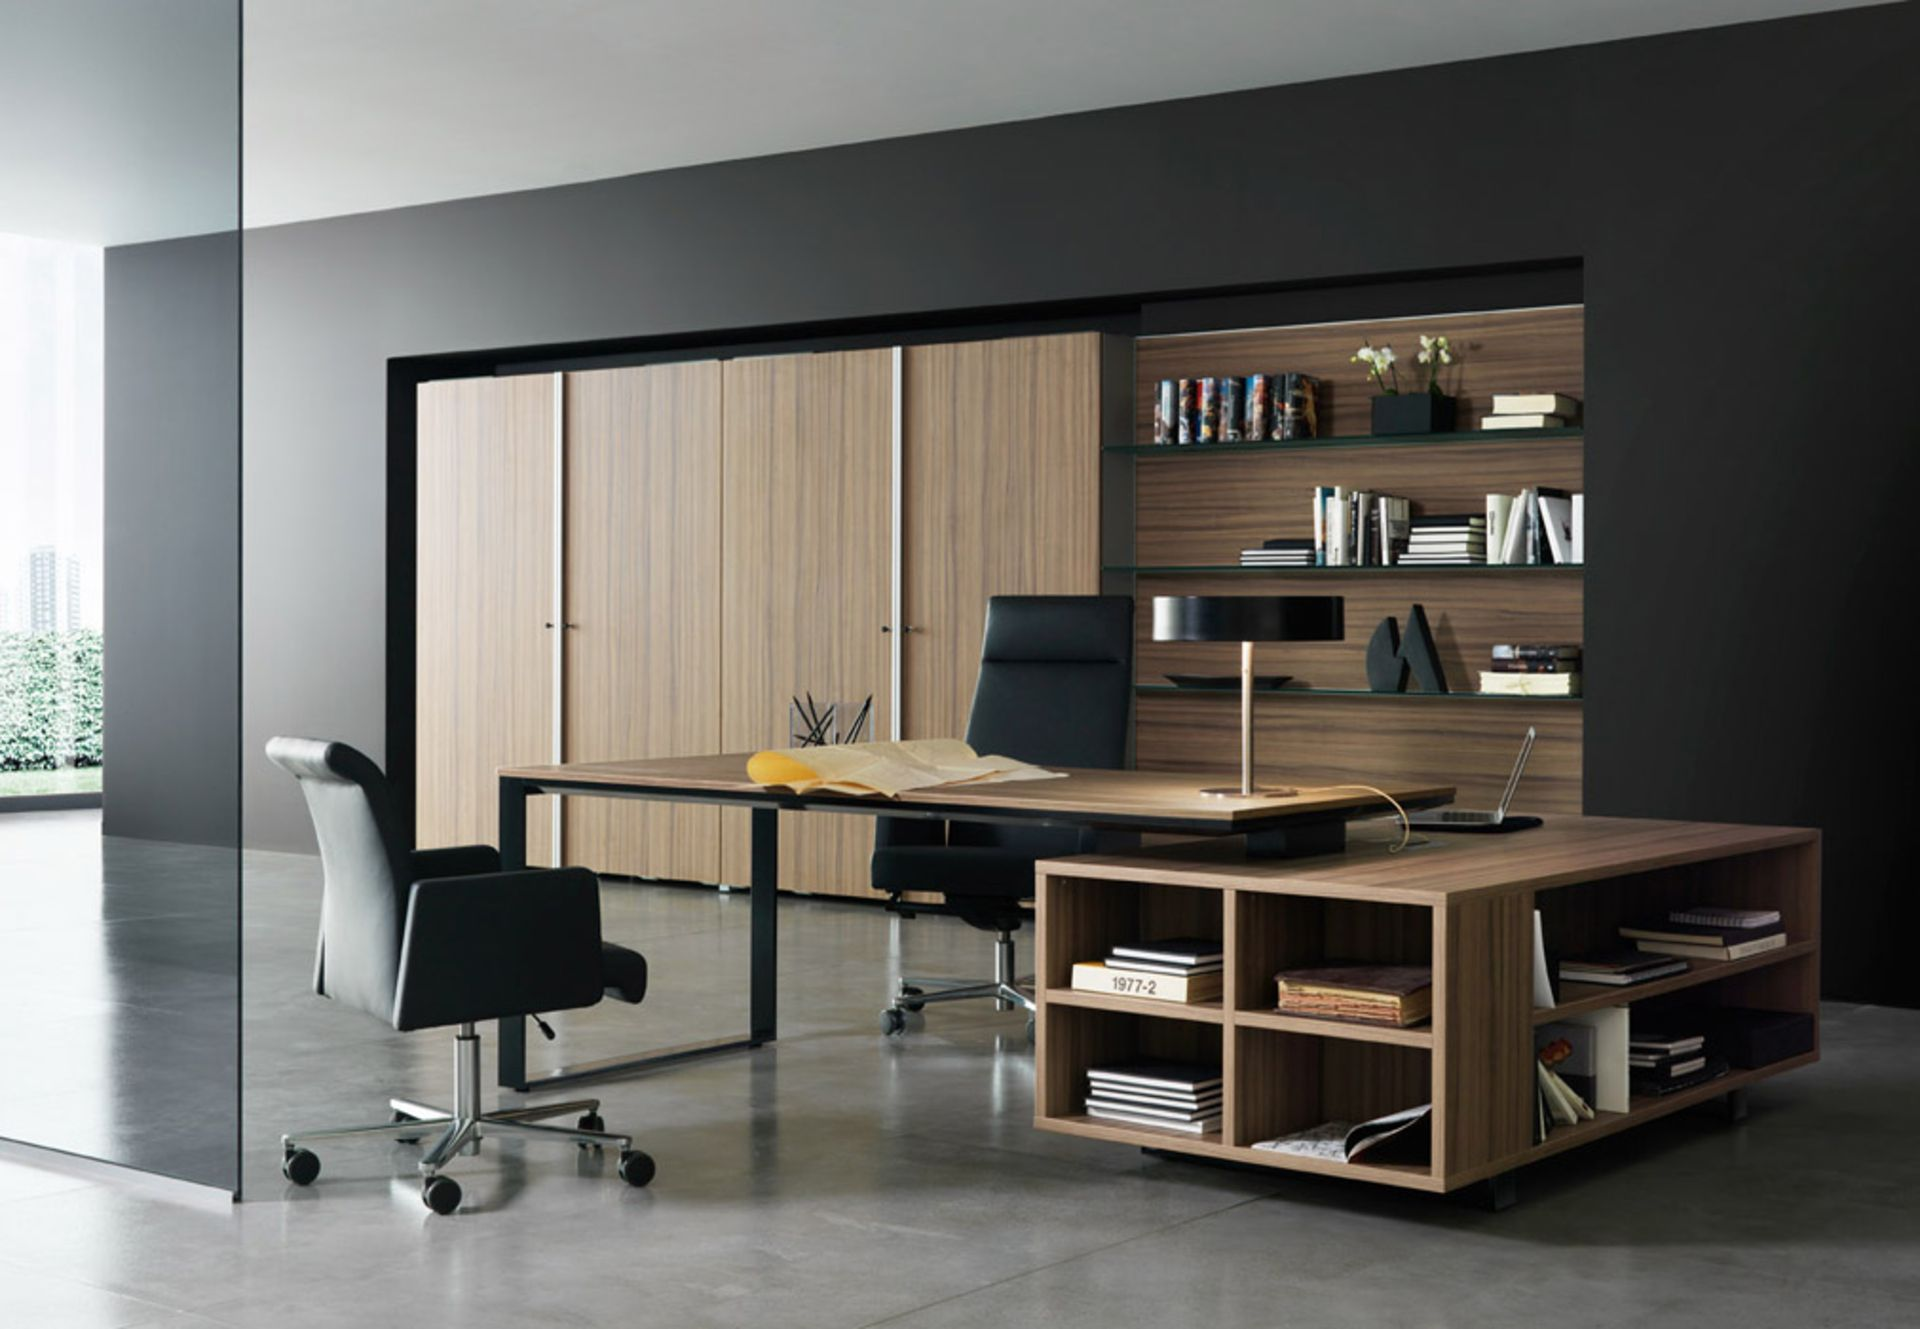 Modern Office Cabinet Design Interesting 10 Office Furniture Contemporary Design Inspiration